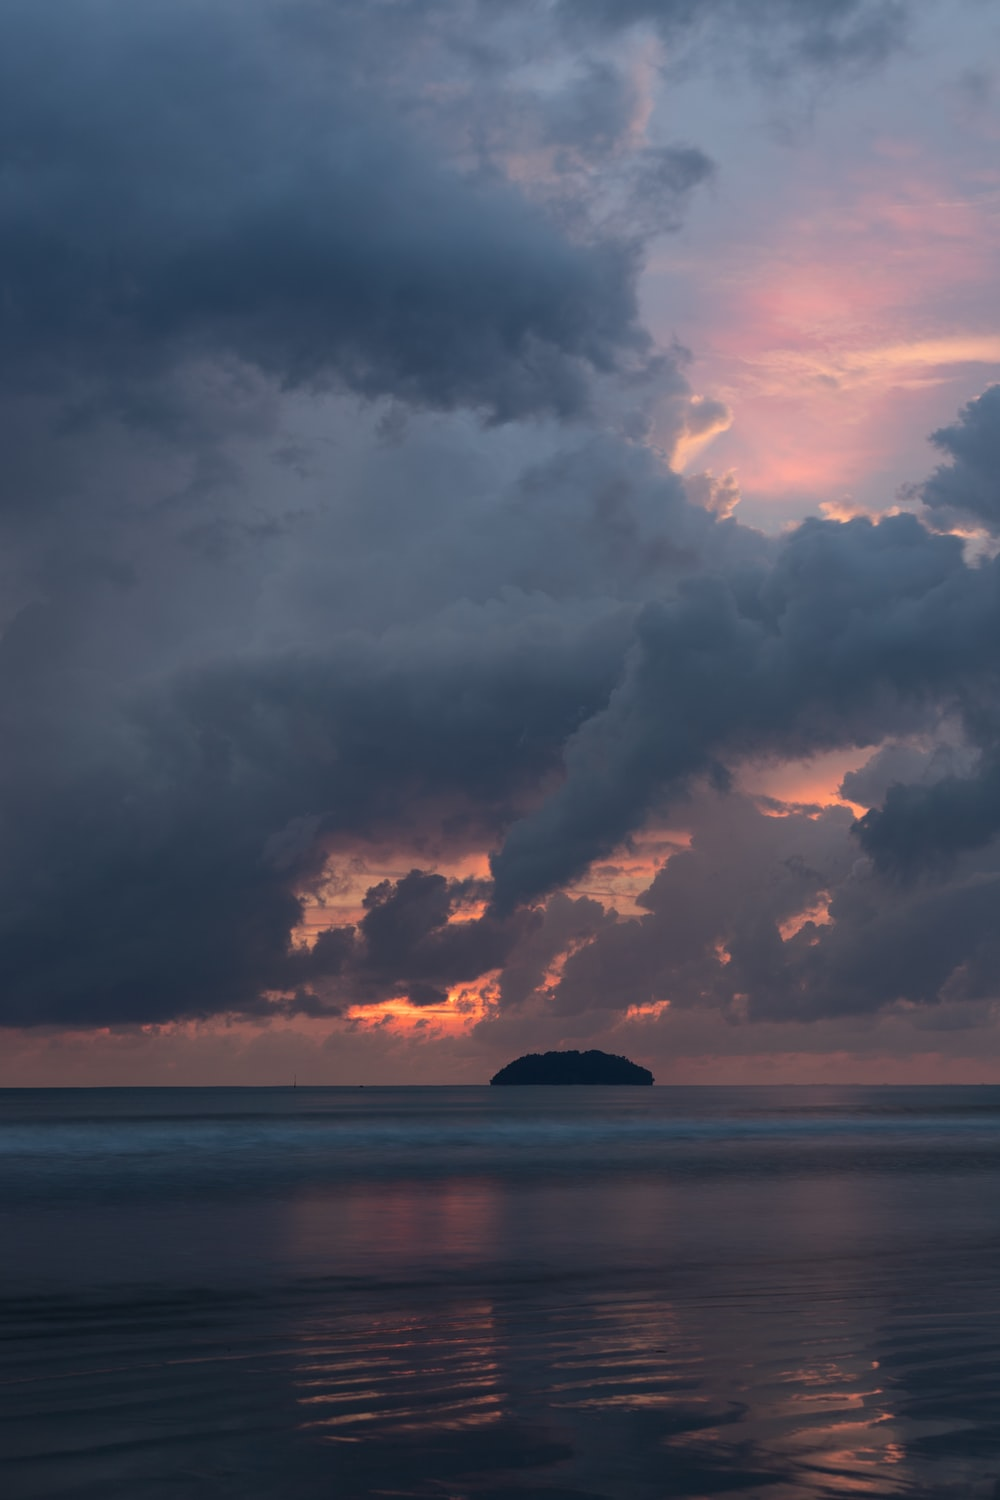 photo island under cloudy sky during golden hour